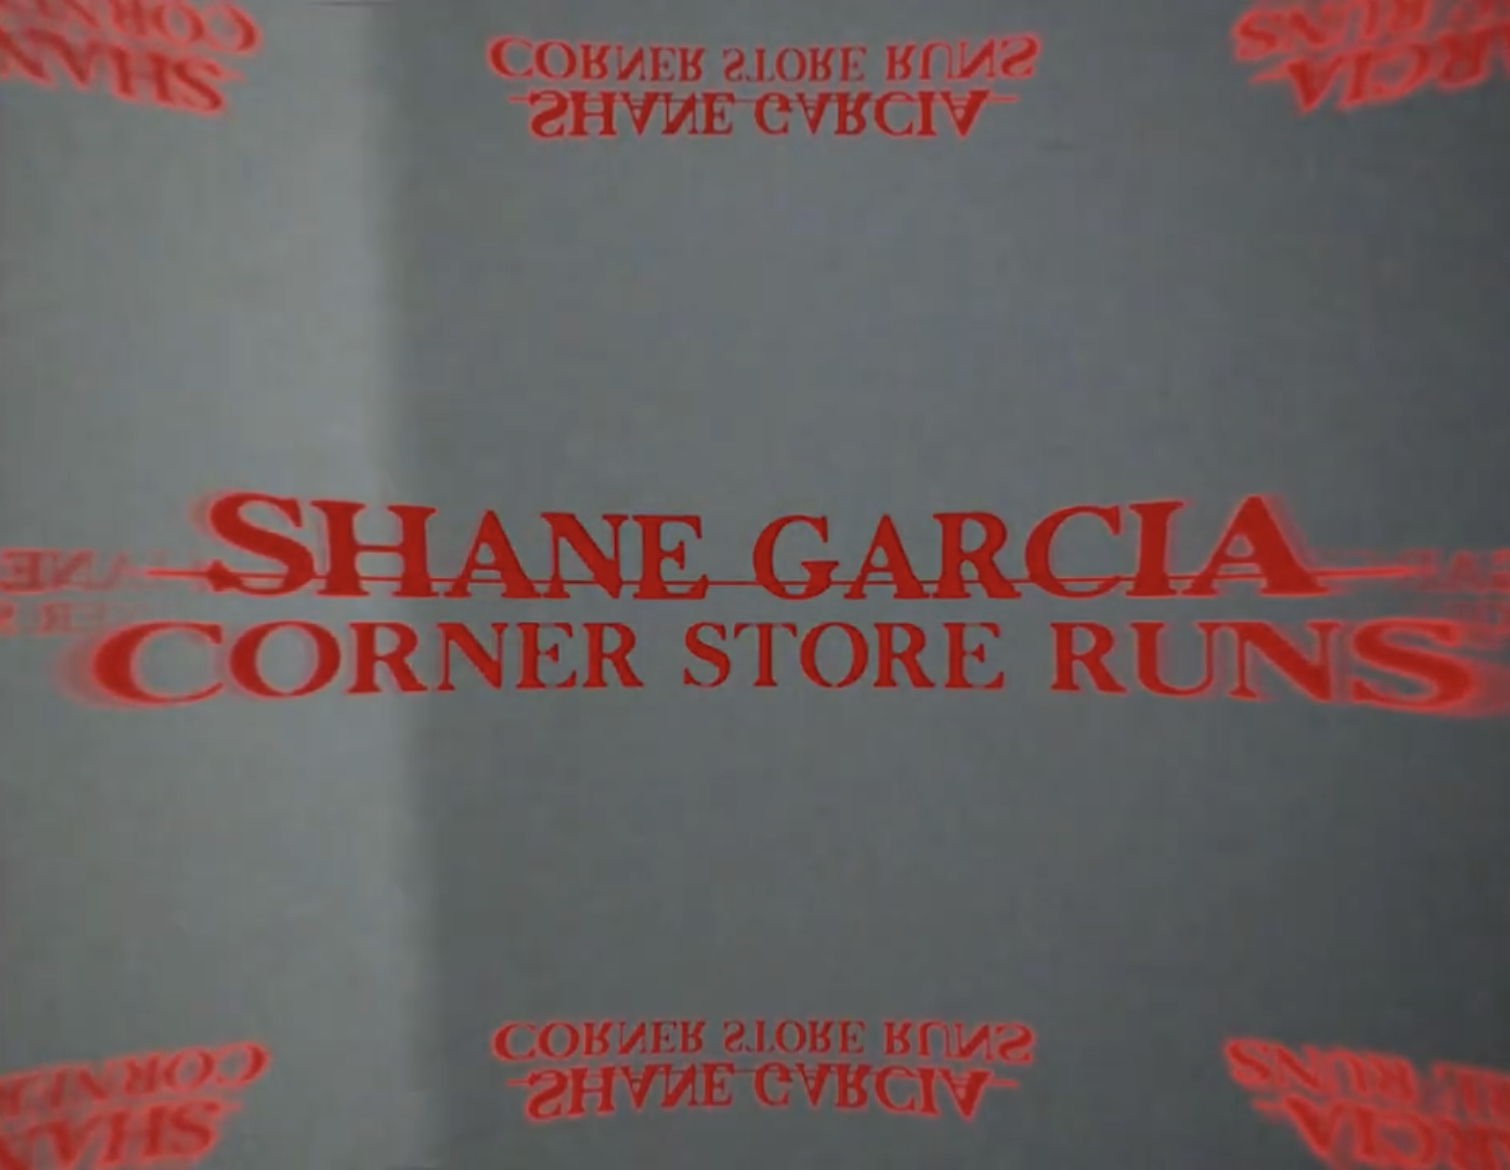 Corner Store Runs (official lyric visualizer)-[Shane Garcia]